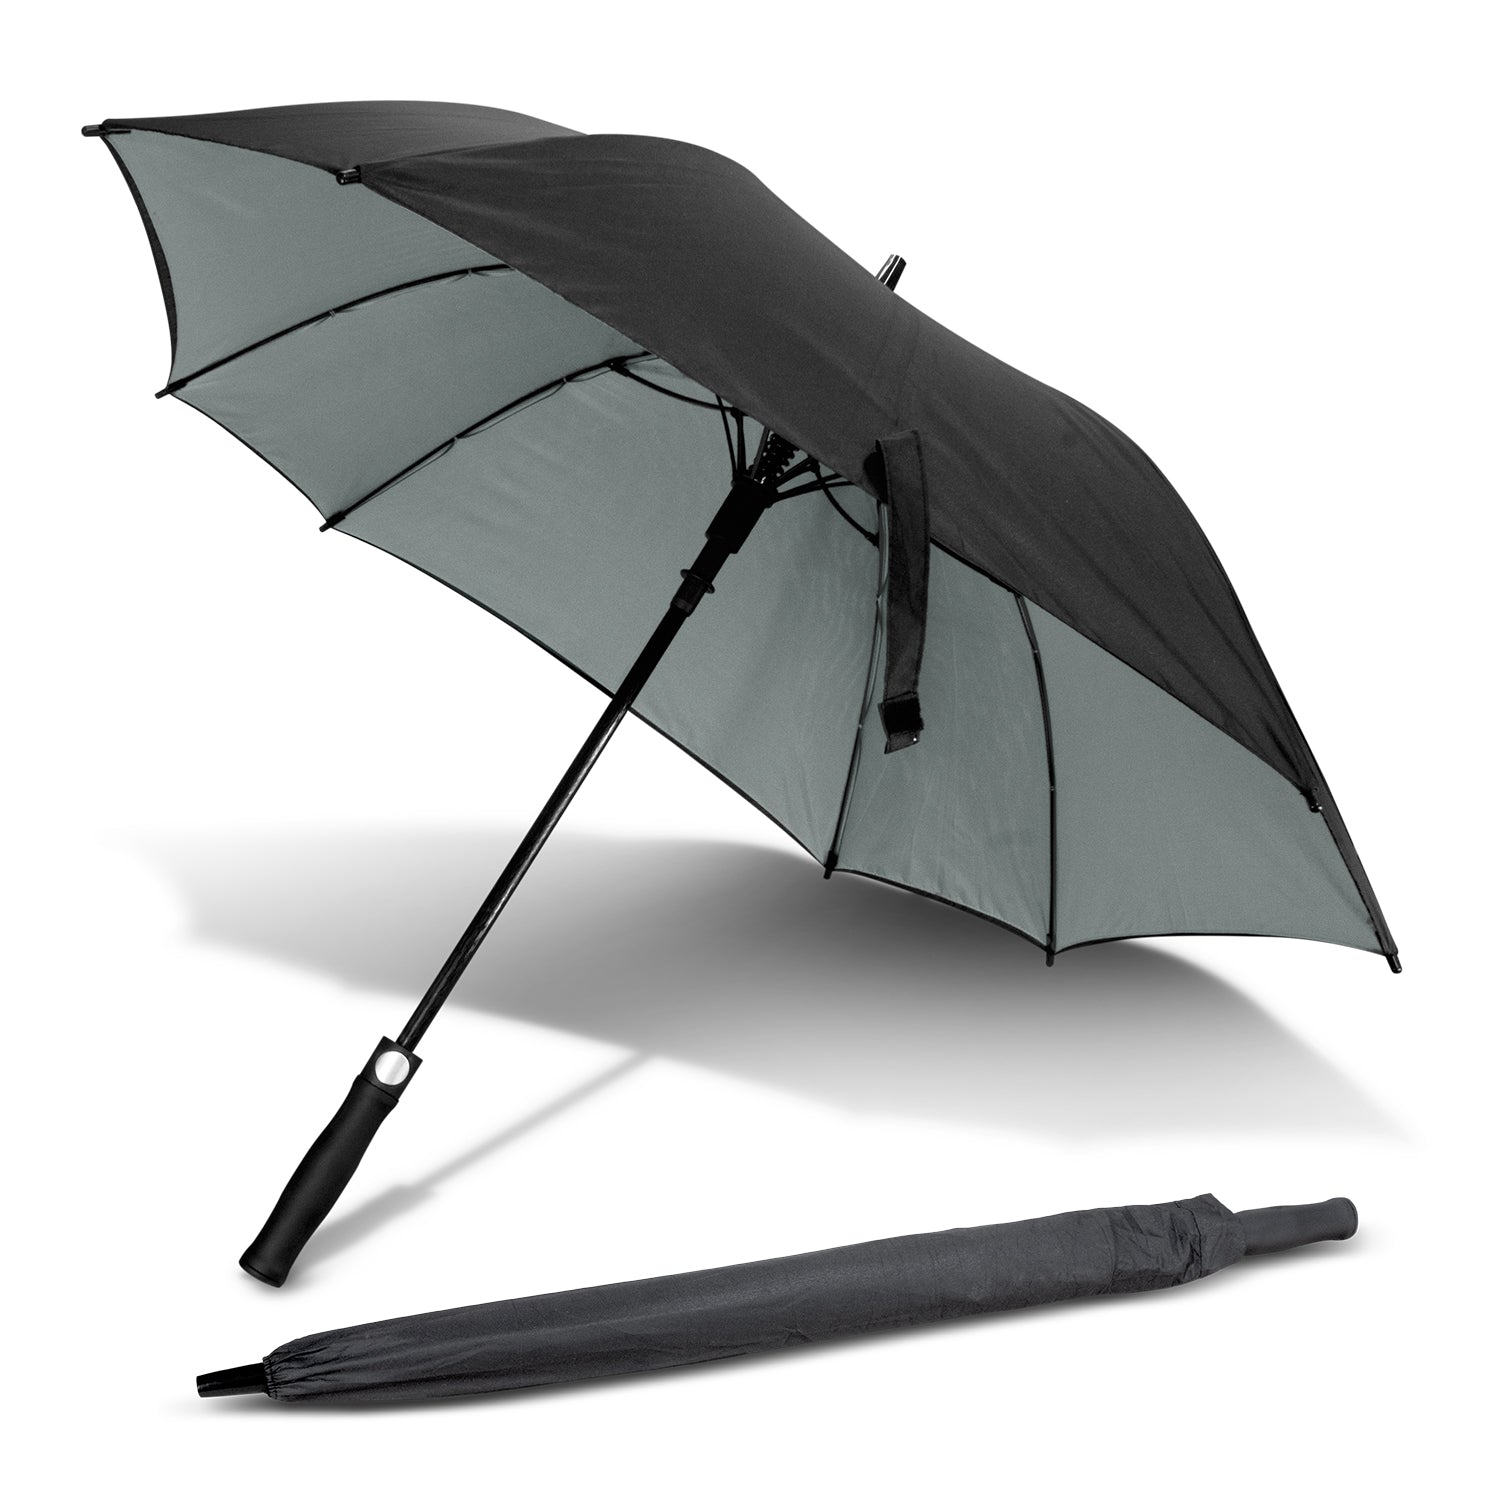 Unique Element Umbrella(SUM-14T) - greenpac.com.au